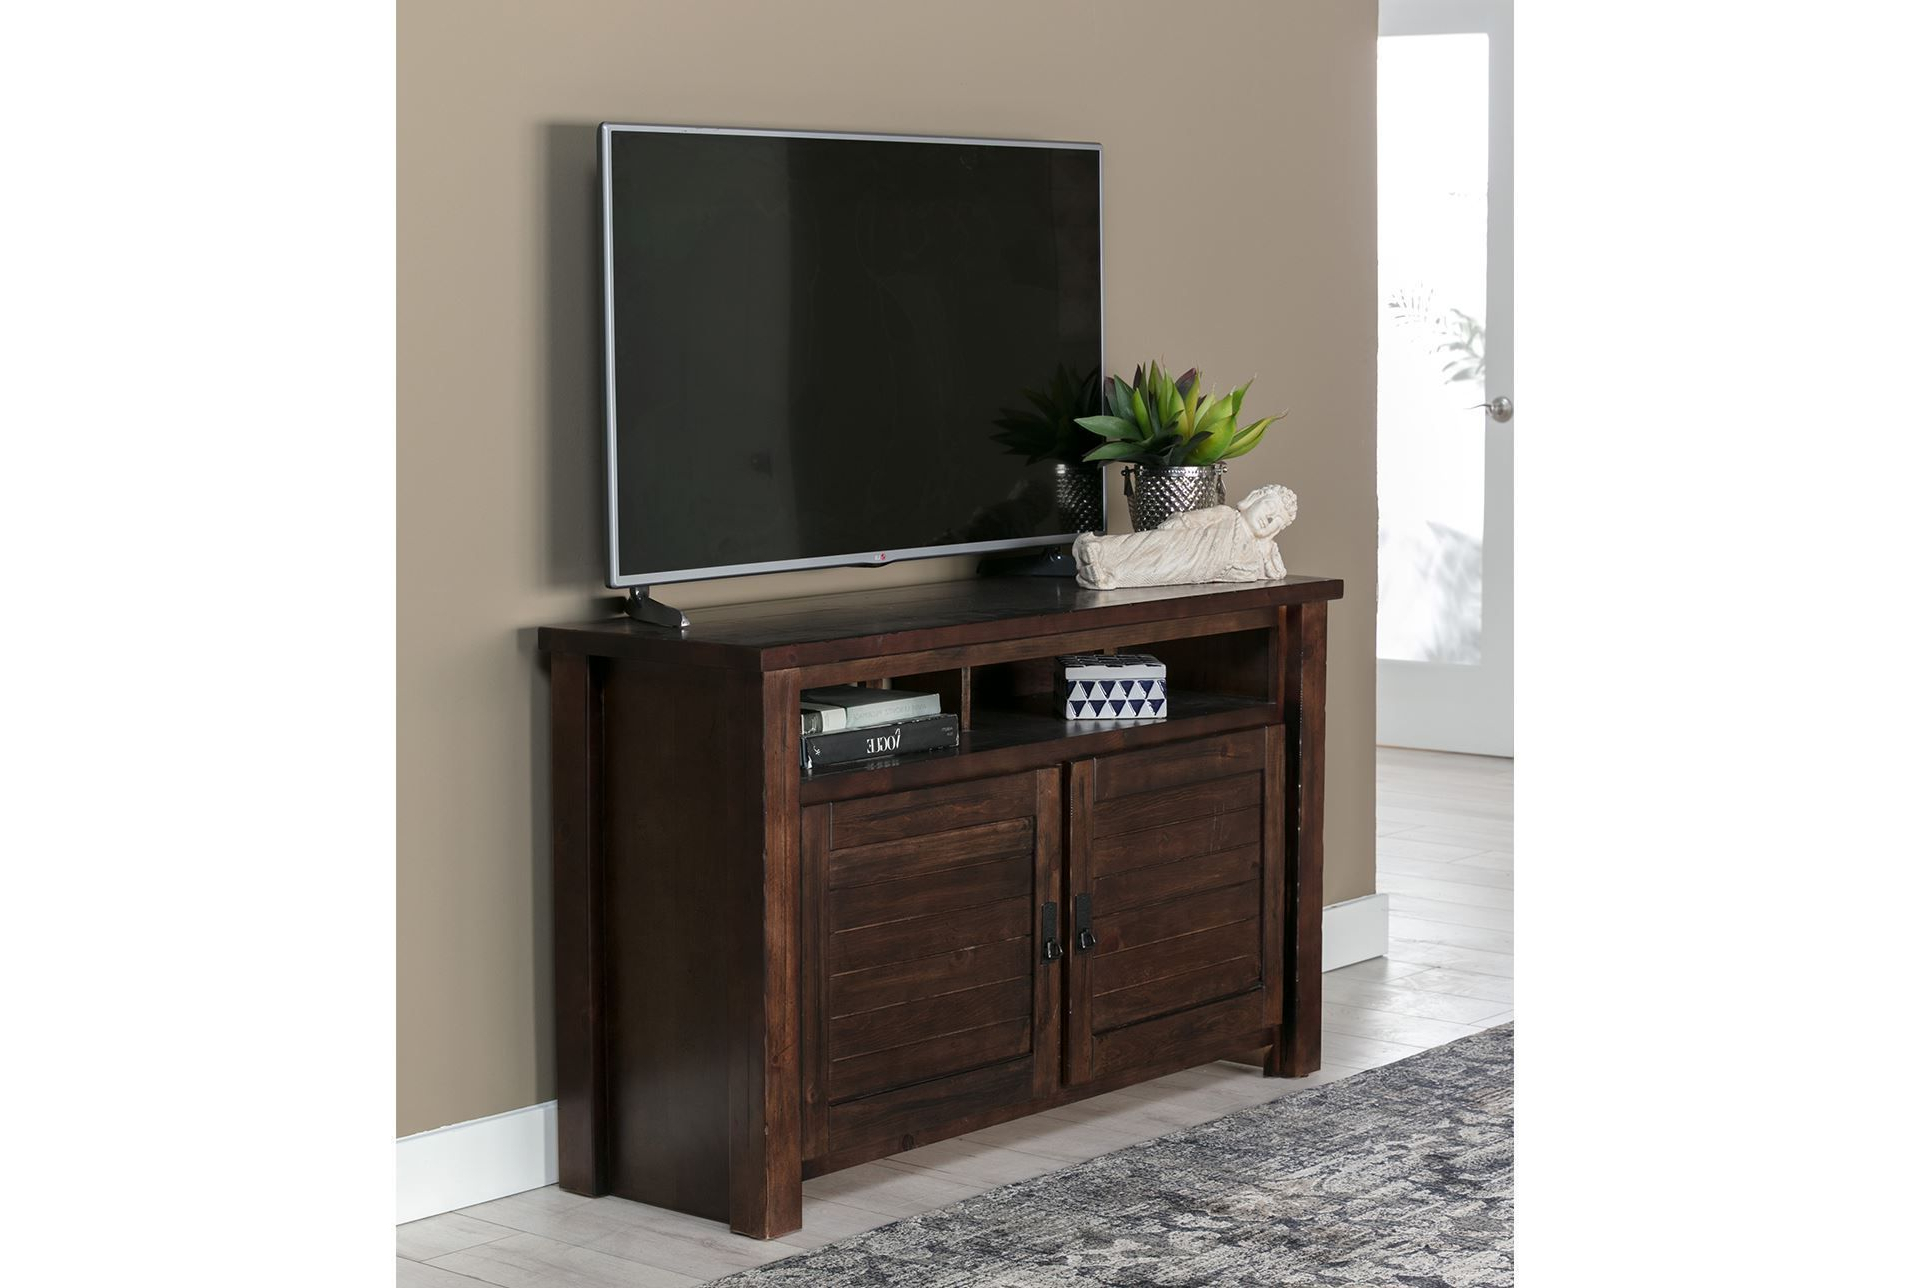 Canyon 54 Inch Tv Stand | Home Decor | Home Living Room, Tv Stand Inside Canyon 54 Inch Tv Stands (View 3 of 20)